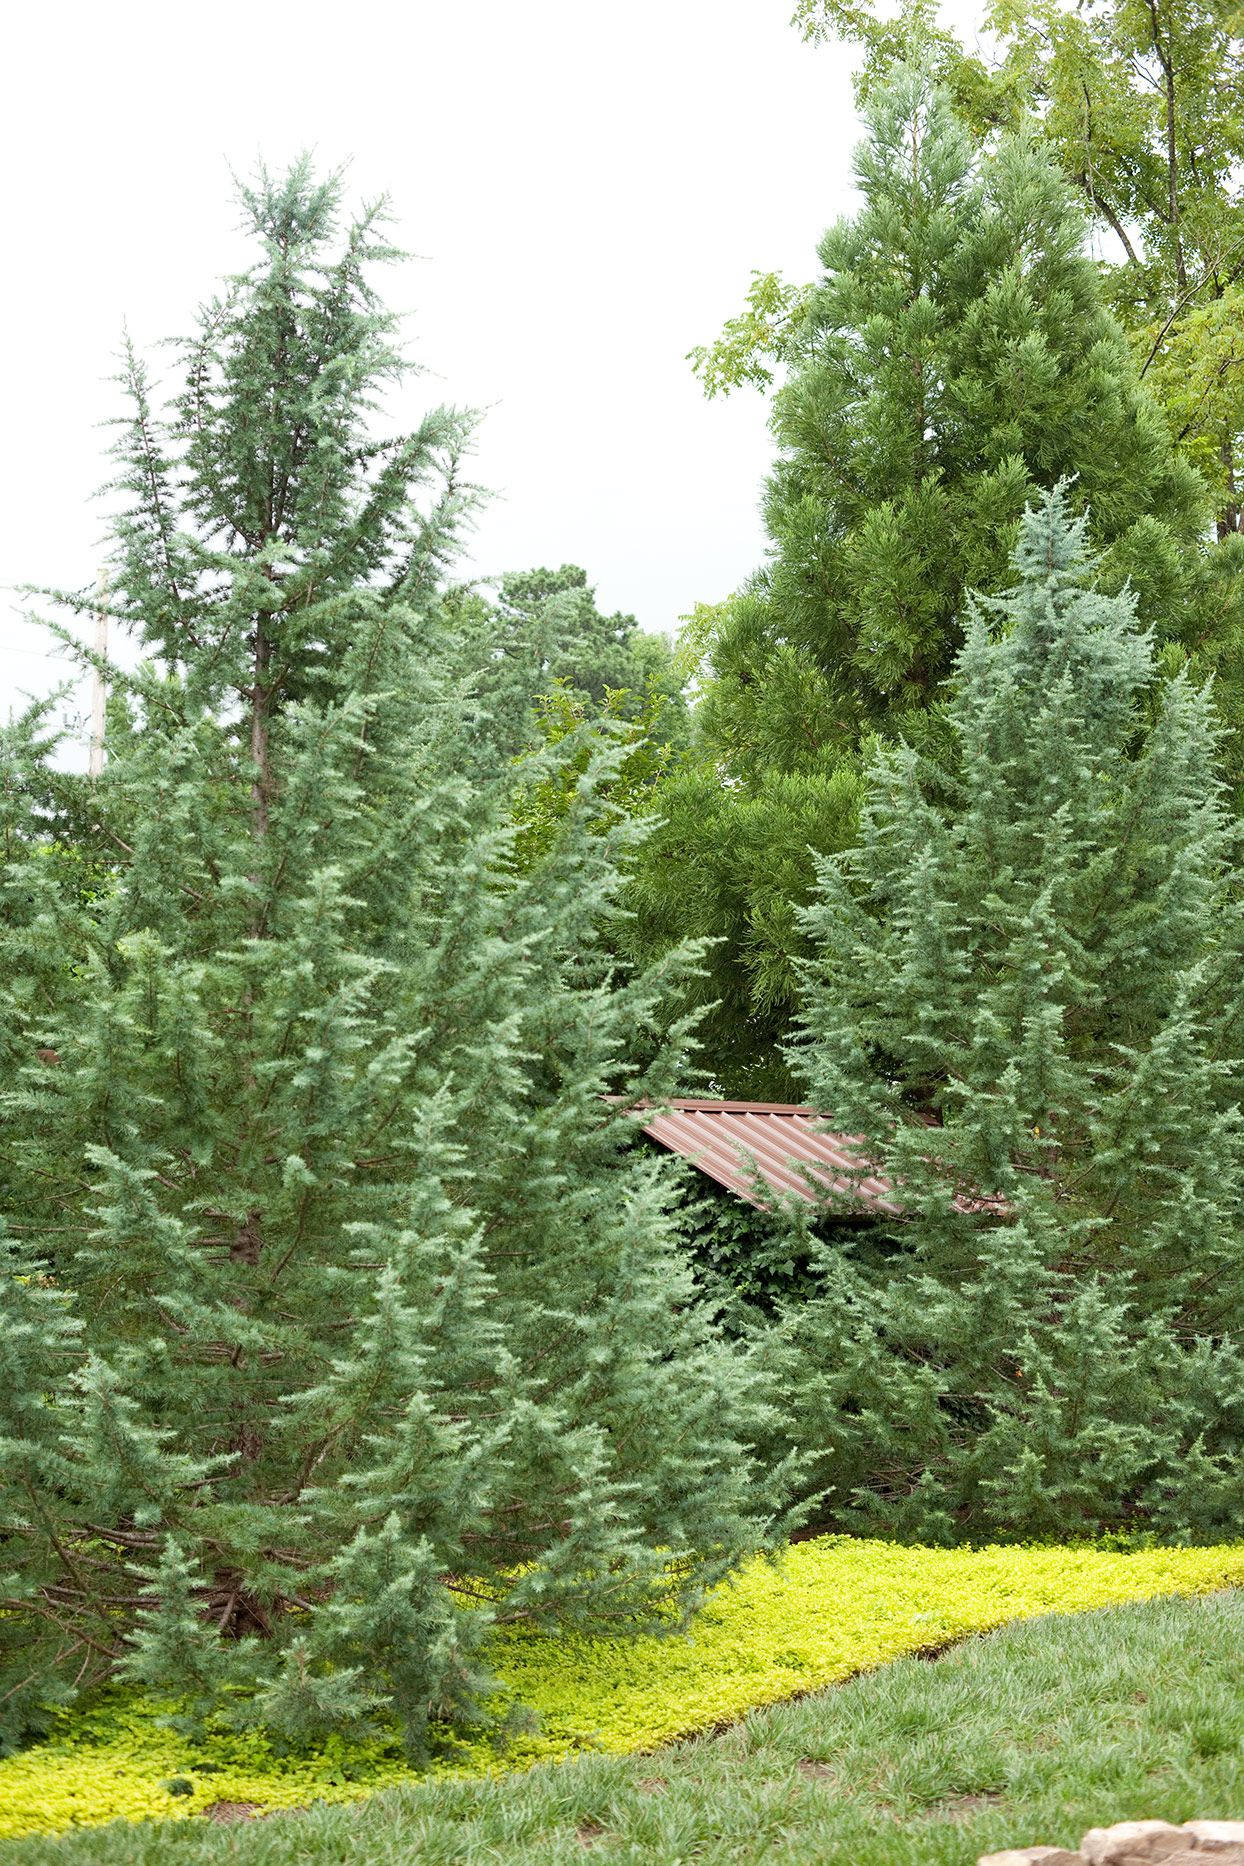 Fast Growing Evergreen Trees To Quickly Transform Your Landscape In 2020 Fast Growing Evergreens Fast Growing Pine Trees Fast Growing Trees